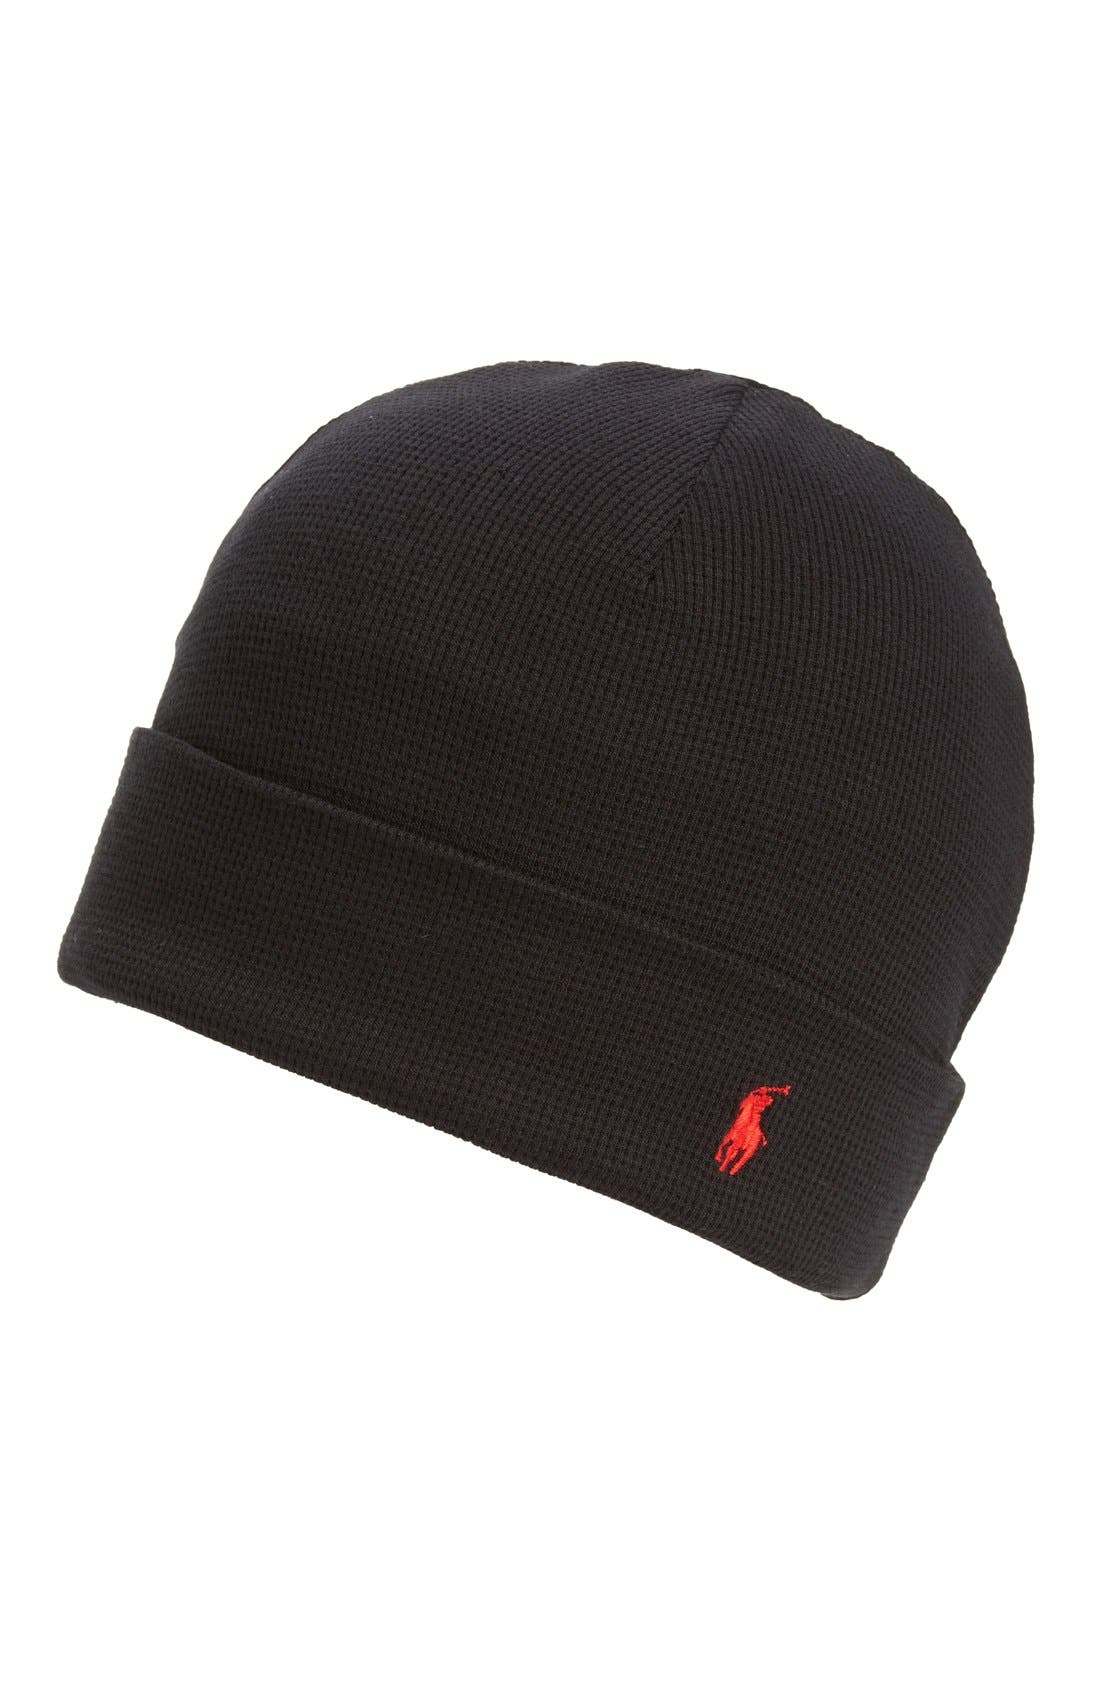 Polo Ralph Lauren Thermal Cuff Cotton Cap